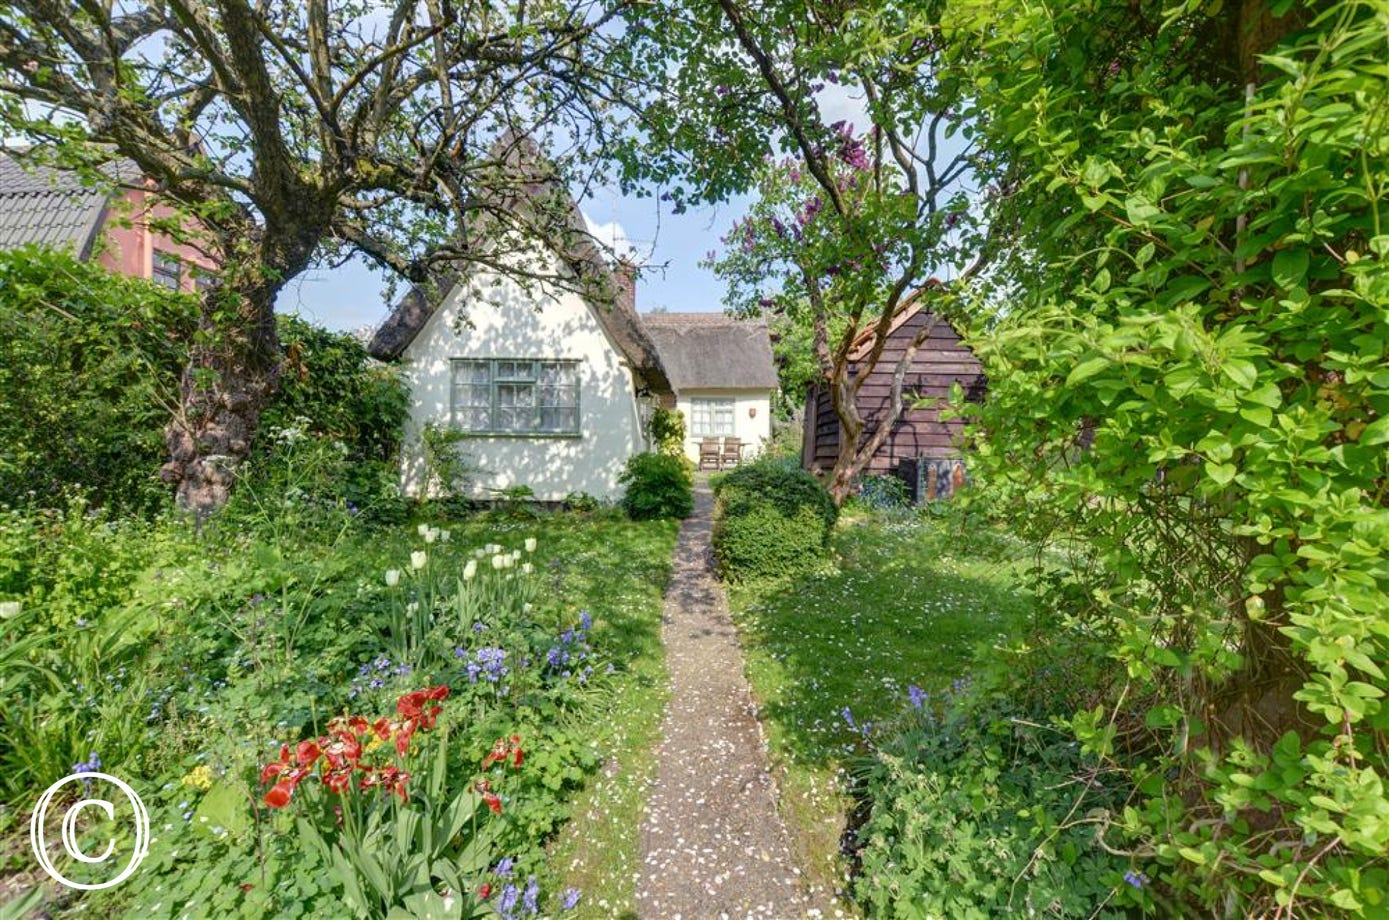 This pretty property dappled with sunlight through the blossom trees and foliage is a postcard property within the village of Denston.